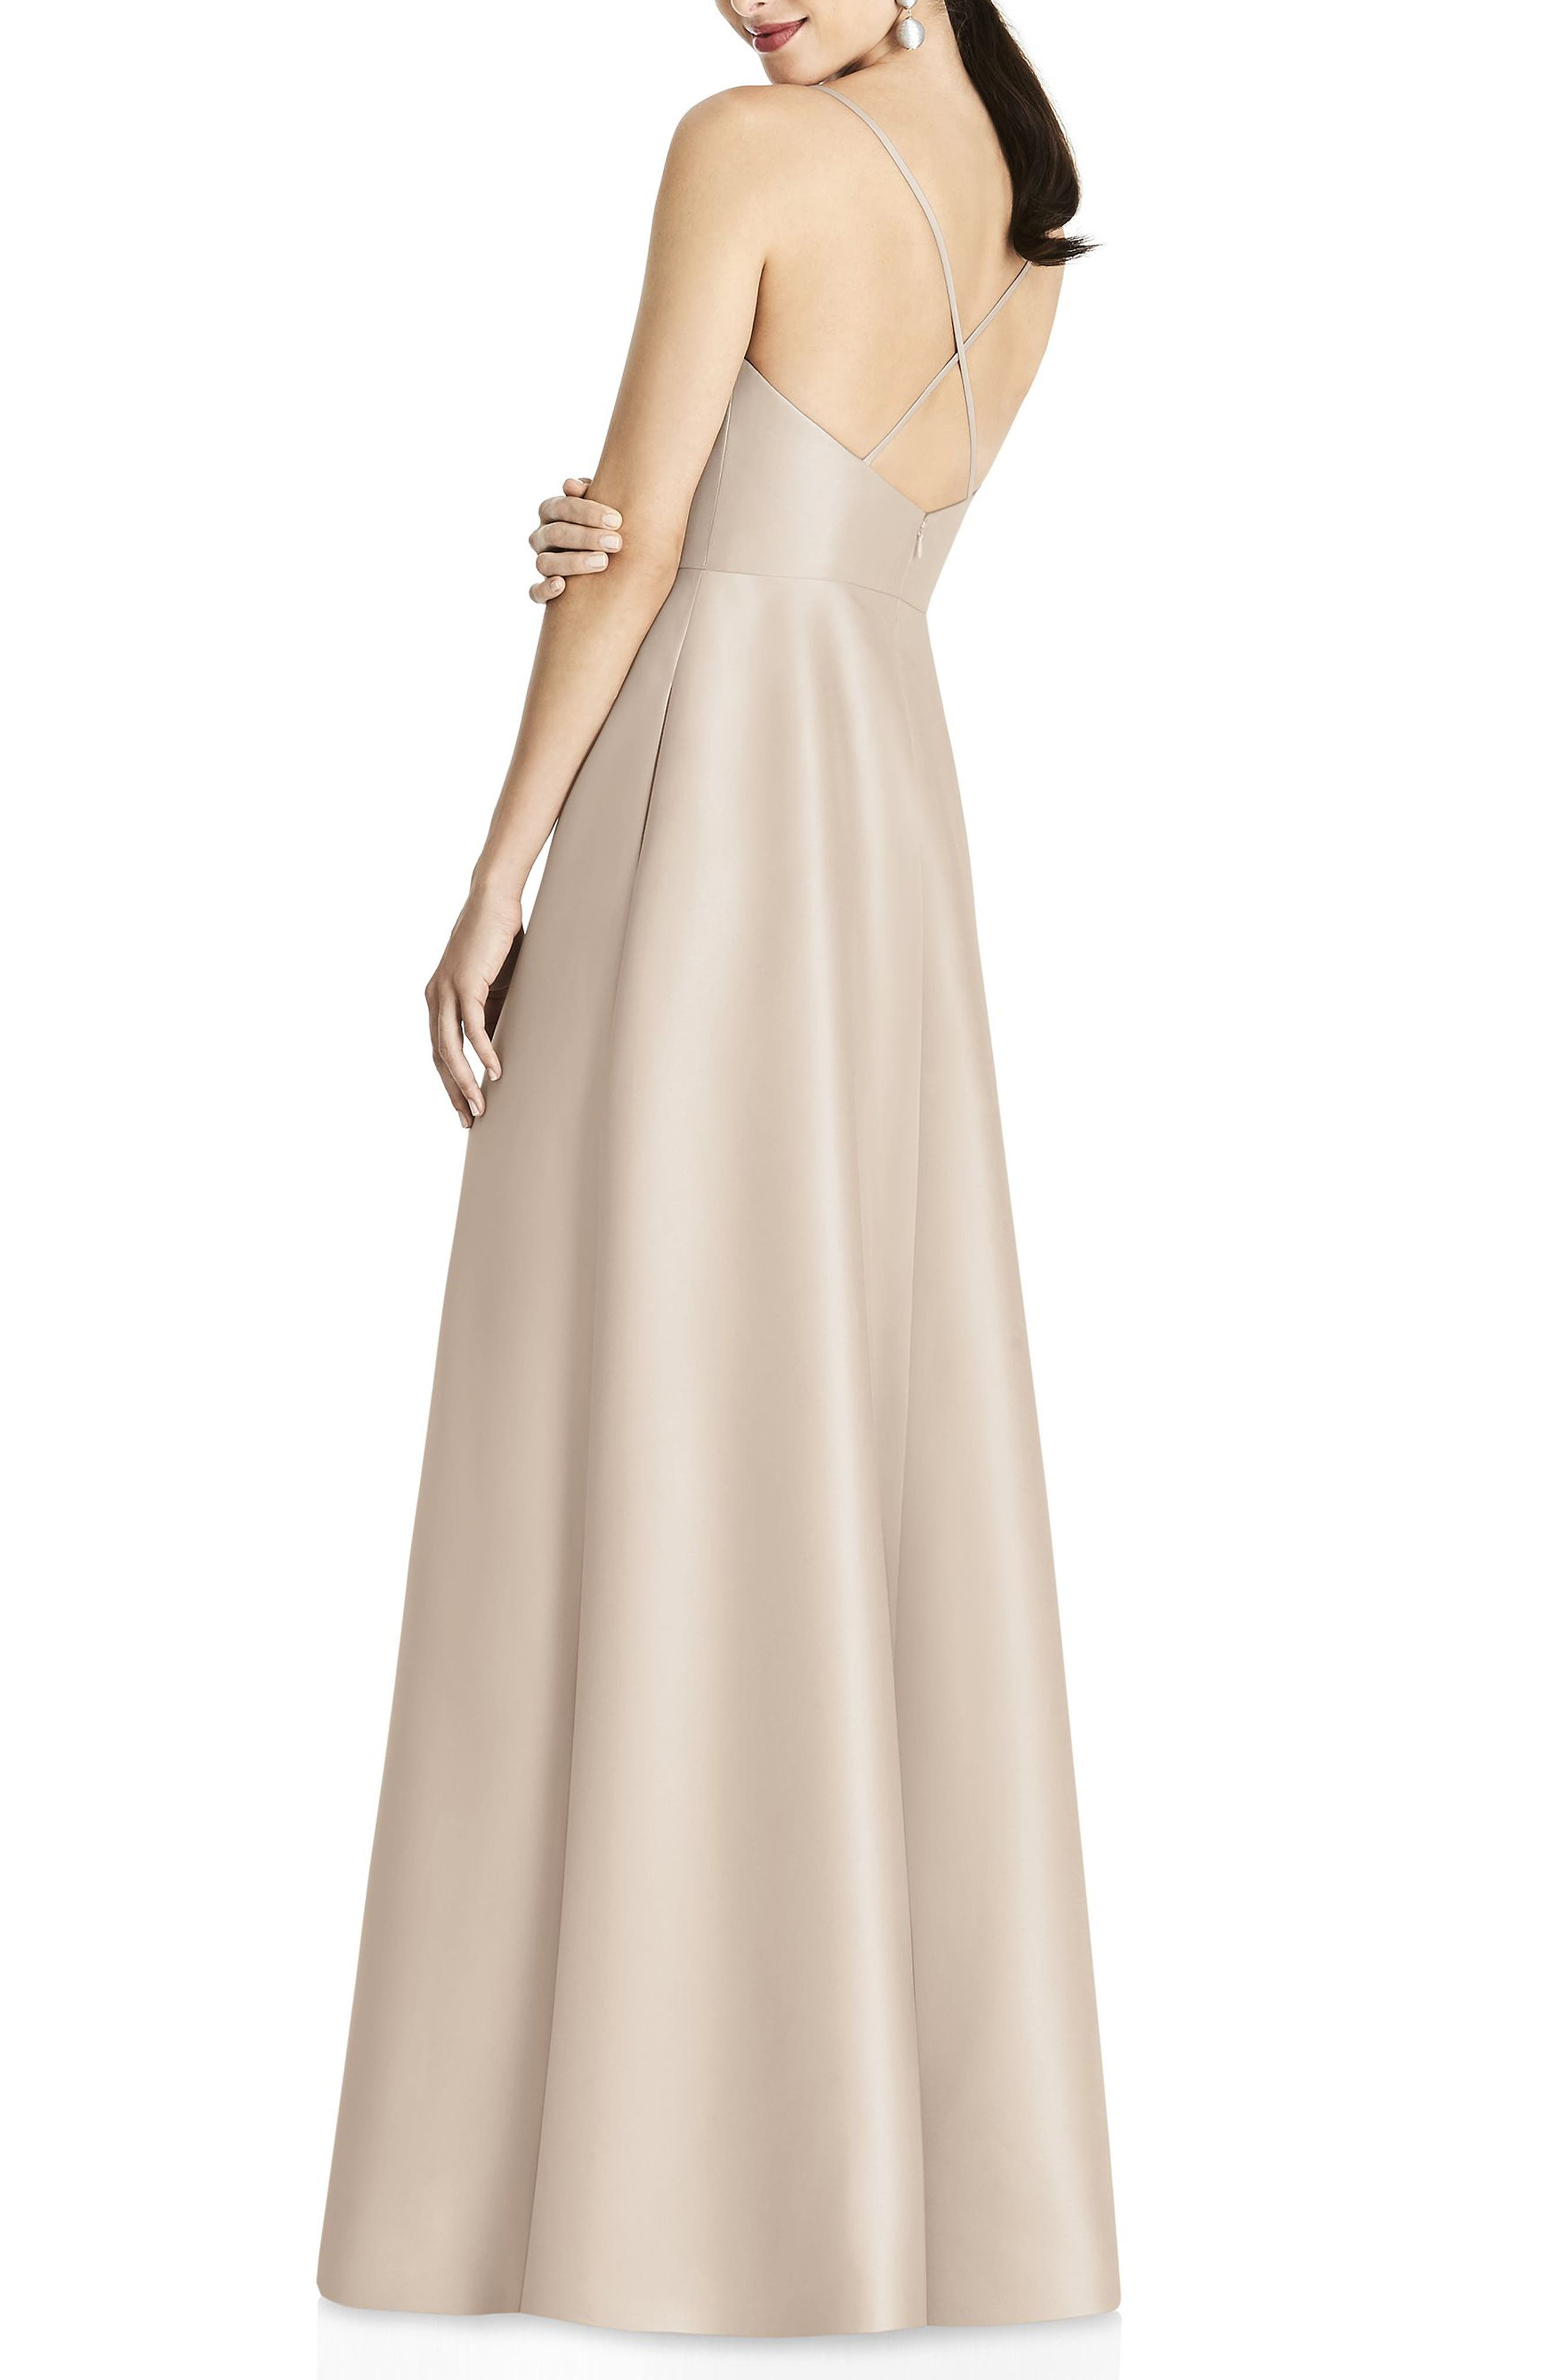 ALFRED SUNG, Strappy Sateen A-Line Gown, Alternate thumbnail 2, color, CAMEO